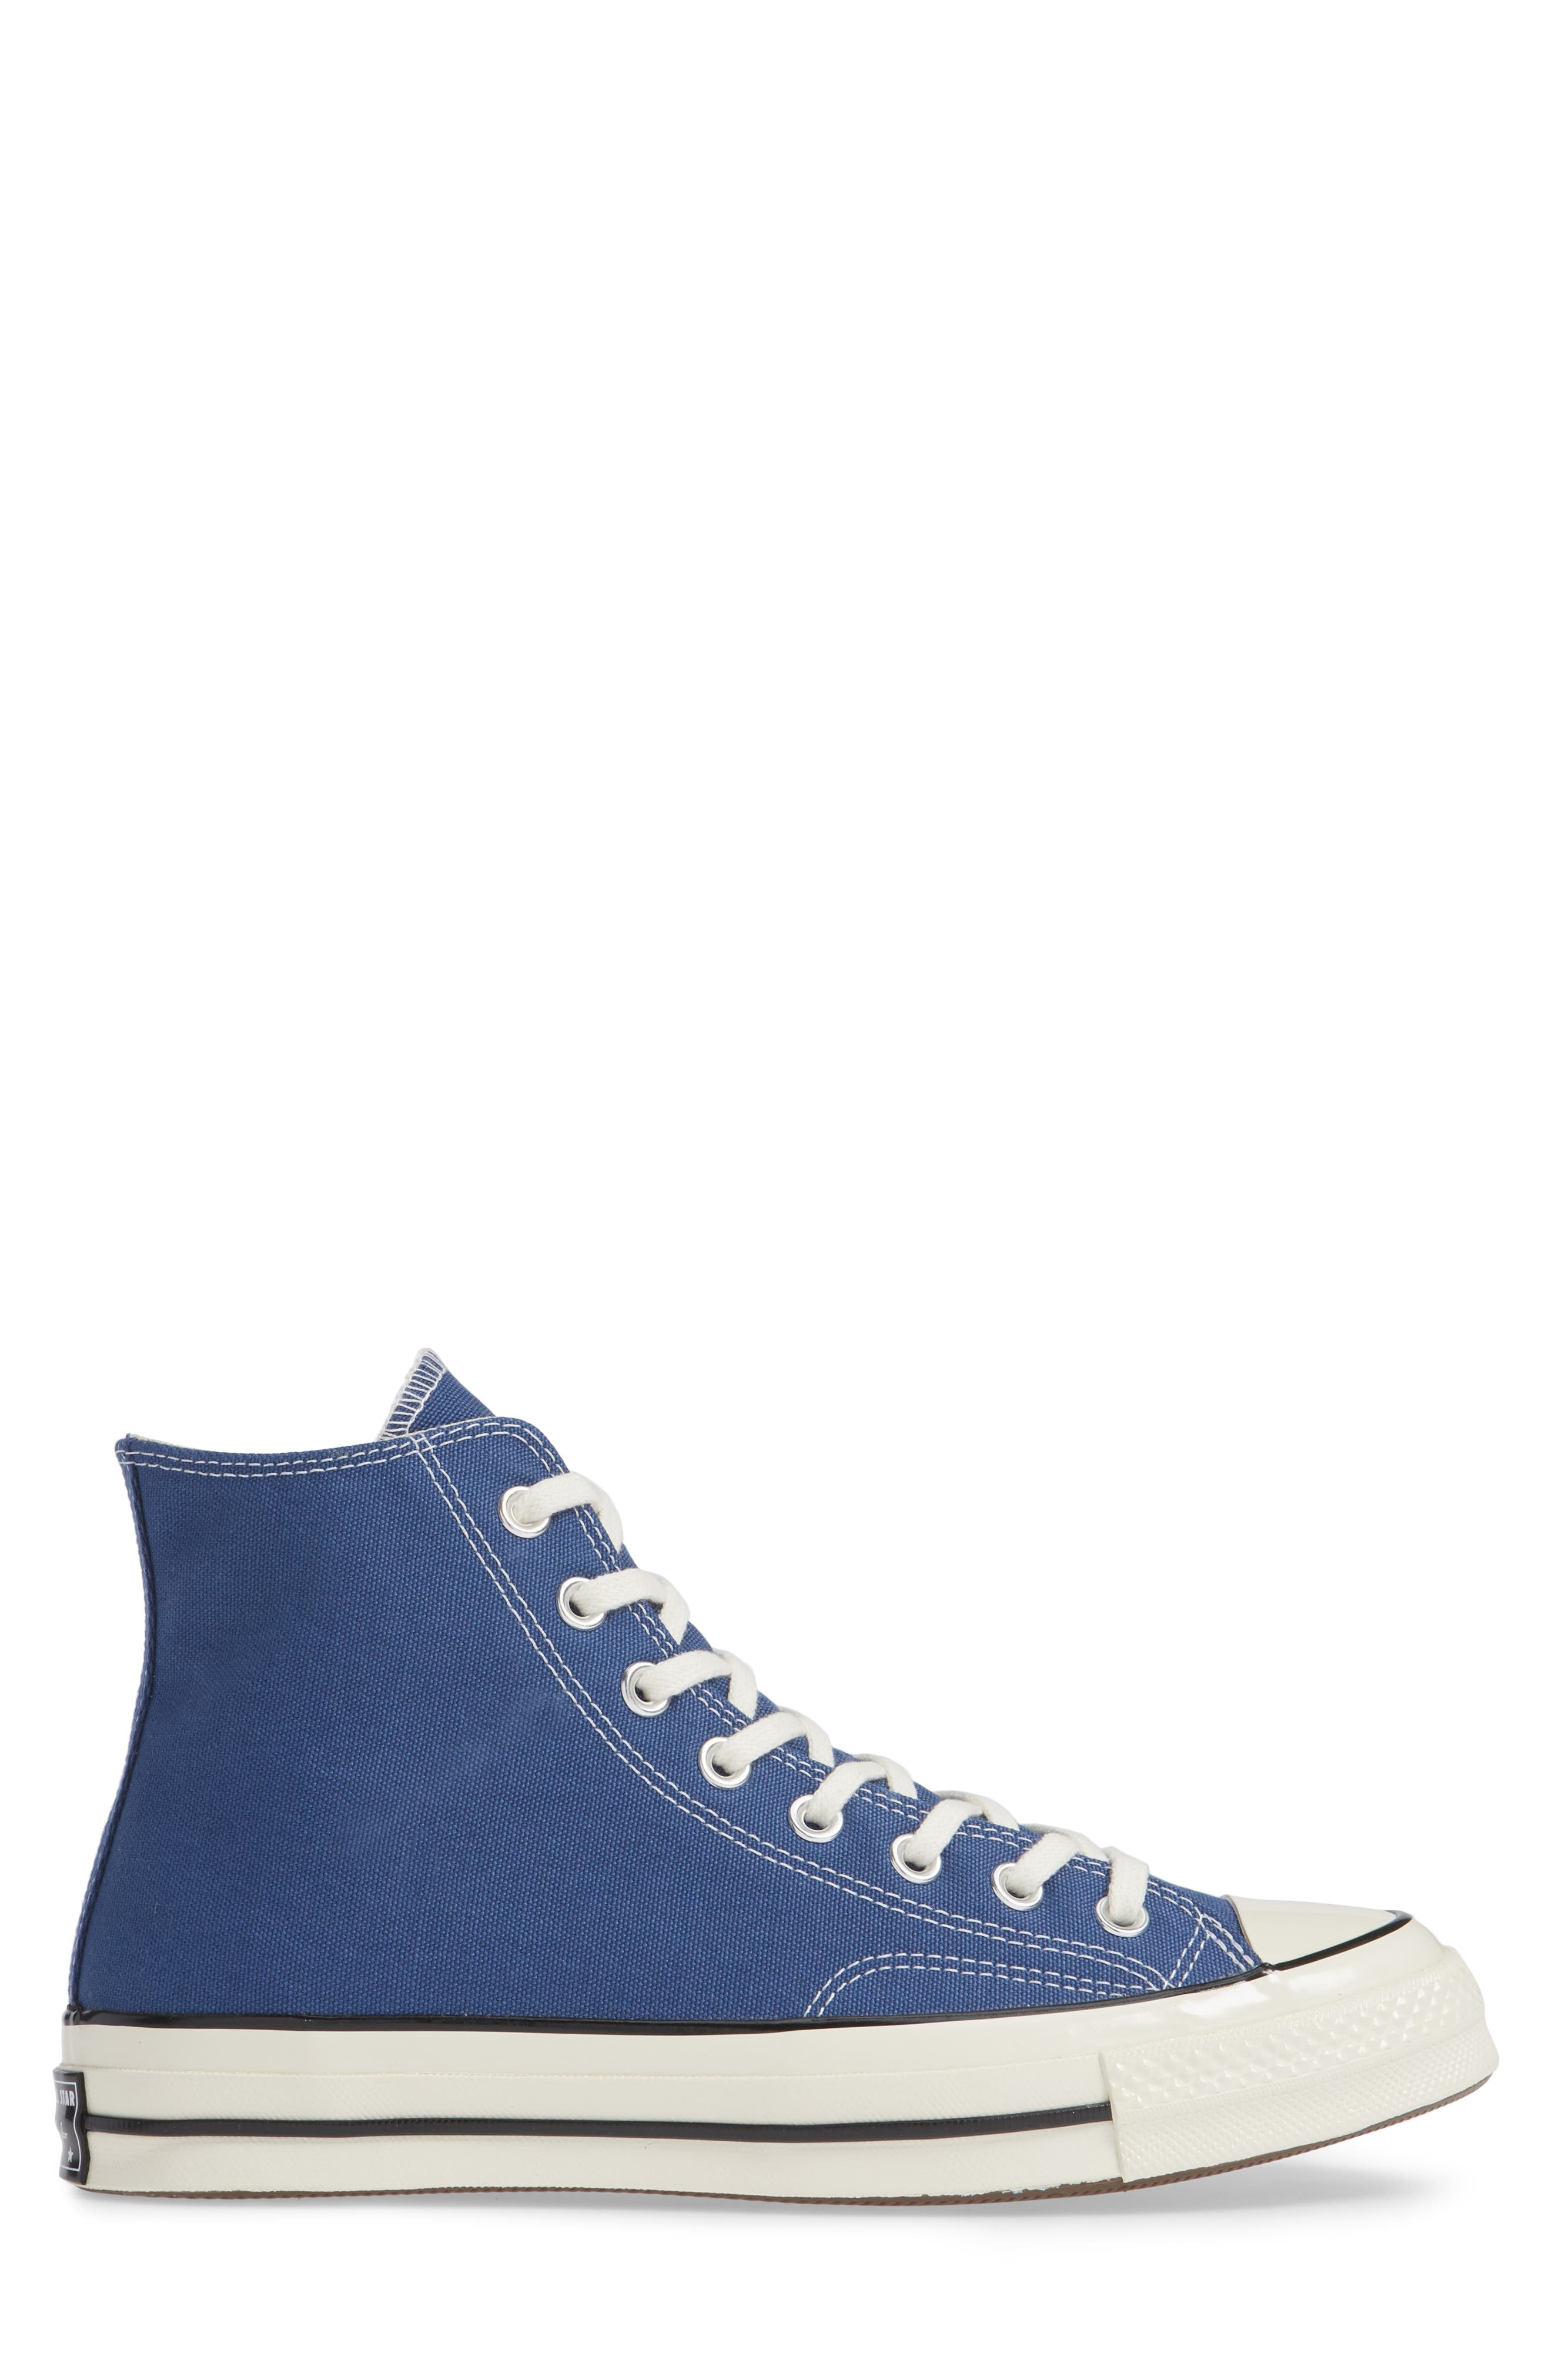 CONVERSE, Chuck Taylor<sup>®</sup> All Star<sup>®</sup> 70 Vintage High Top Sneaker, Alternate thumbnail 3, color, TRUE NAVY/ BLACK